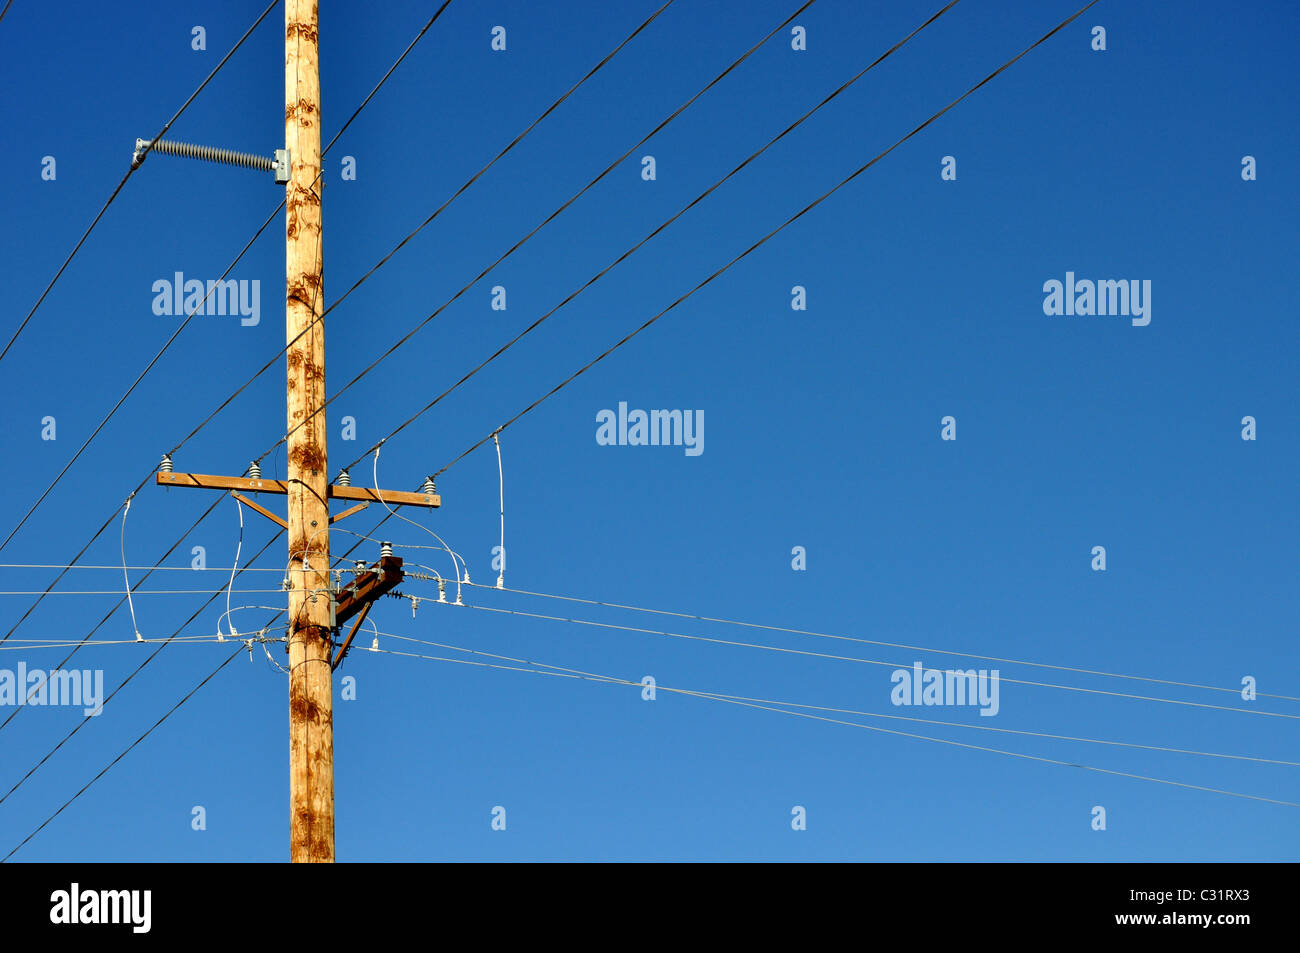 electric pole - Stock Image